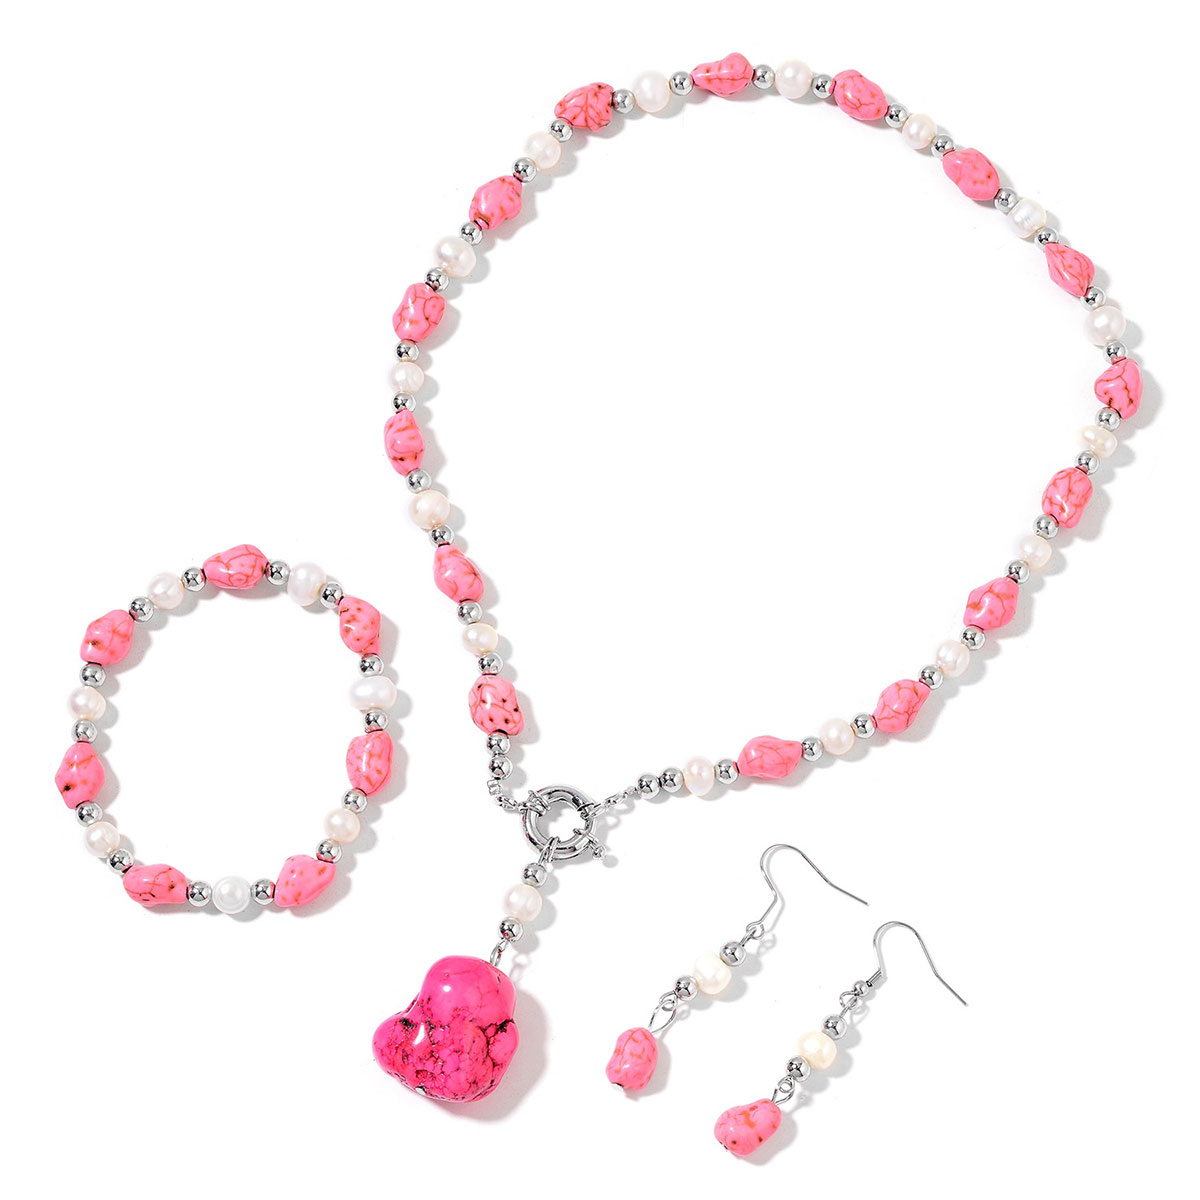 11d7cb1926e32 Pink Howlite, Freshwater Pearl Silvertone Bracelet (Strechable), Earrings  and Beaded Station Necklace With Removable Drop Charm (18.00 In) Total Gem  ...